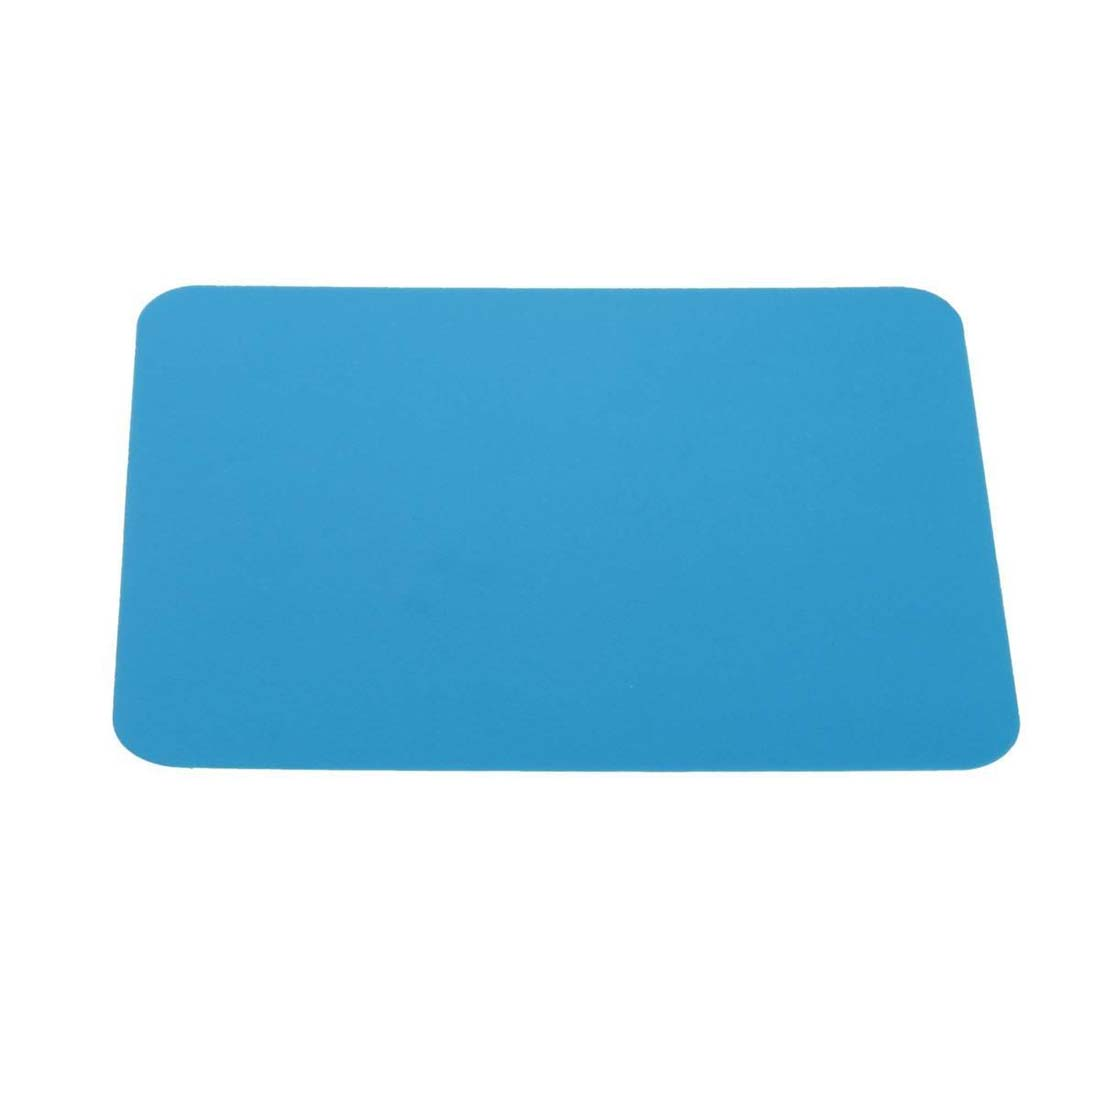 Gaming mat mouse pad Leicht thin anti slip silicone gel gaming mouse mat mouse pad for PC laptop computer